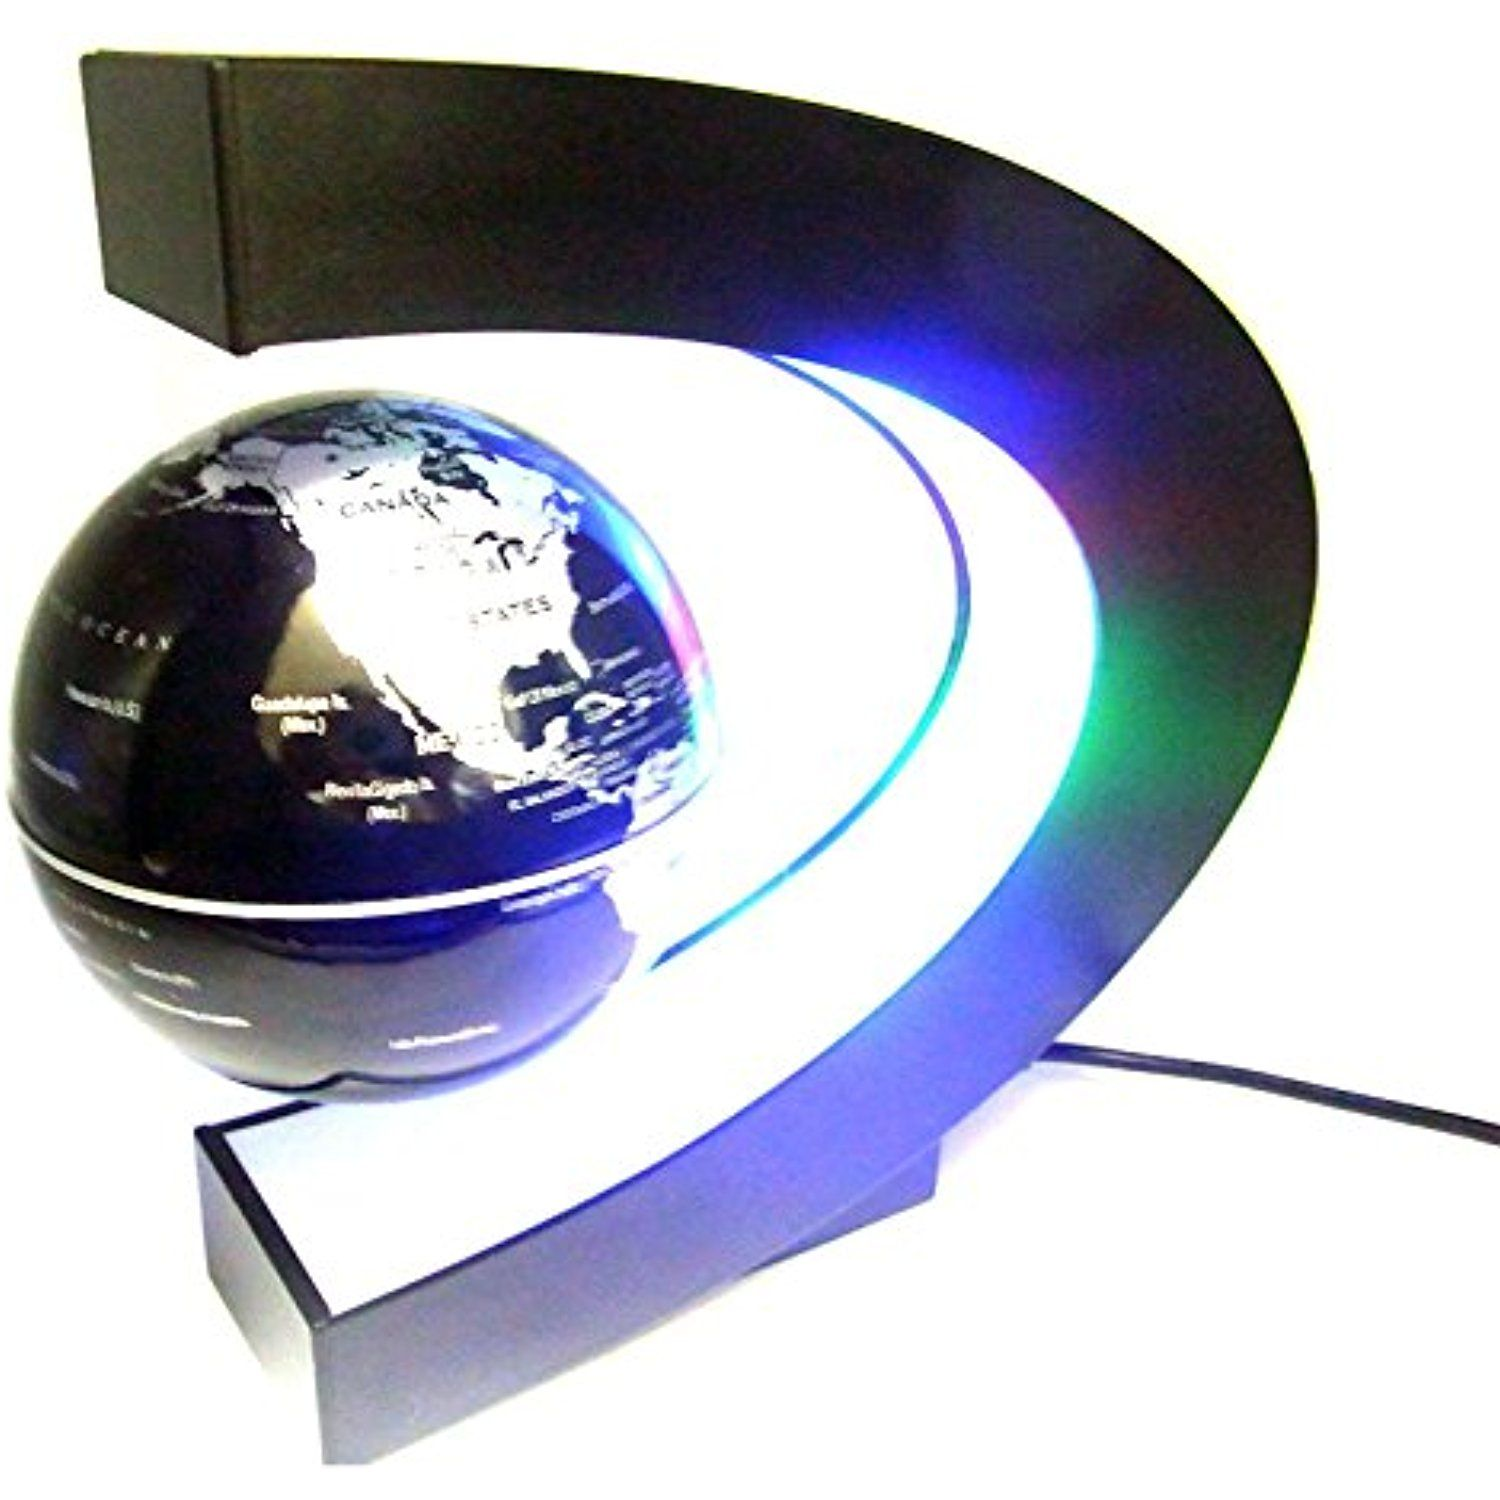 Sienoc magnetic levitation floating world map globe with led lights sienoc magnetic levitation floating world map globe with led lights for learning education teaching demo home gumiabroncs Images